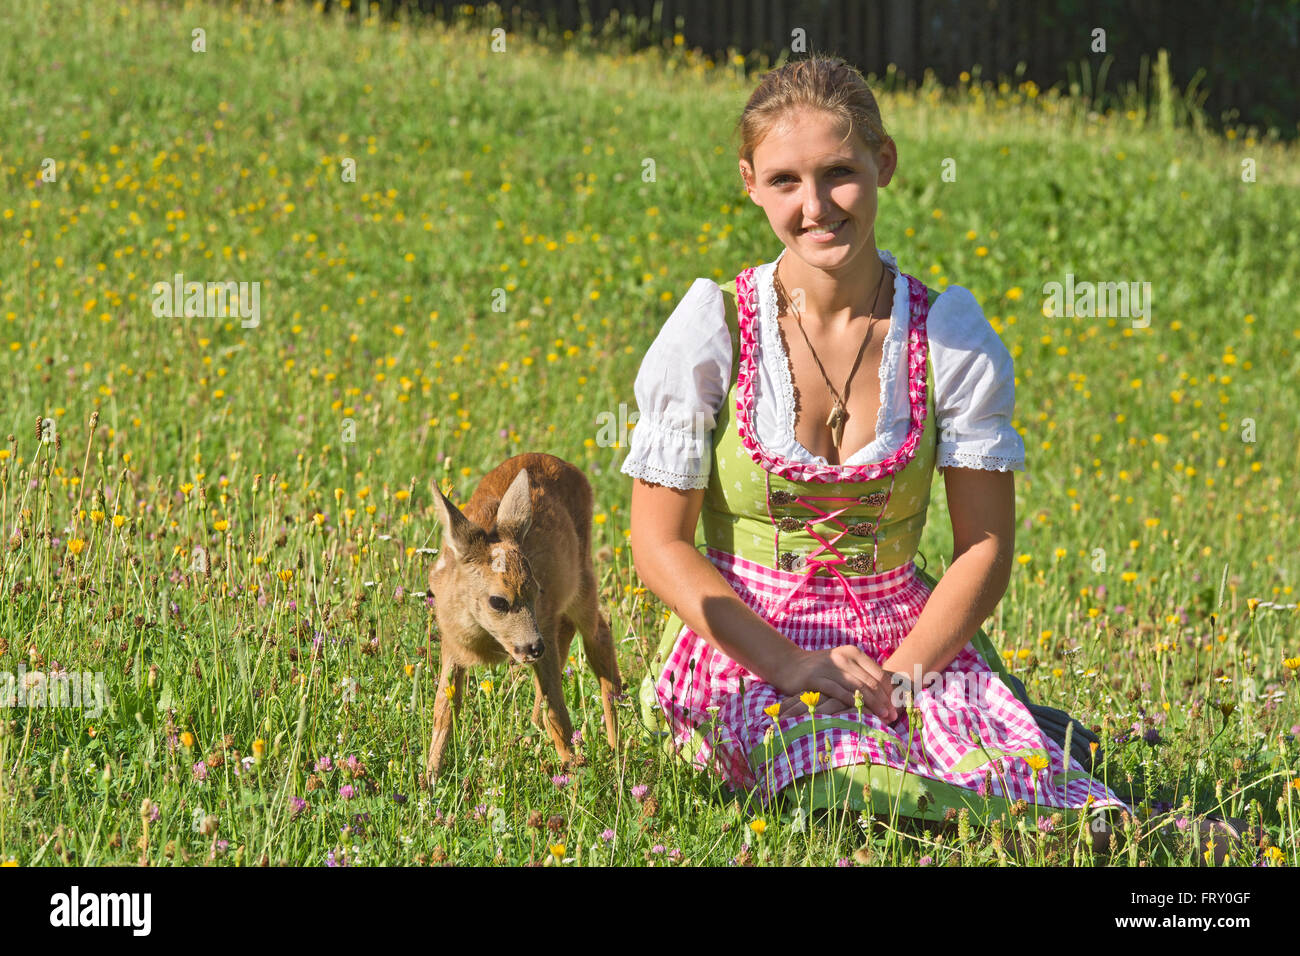 Woman in dirndl with a tame fawn in a flower meadow, Tyrol, Austria - Stock Image